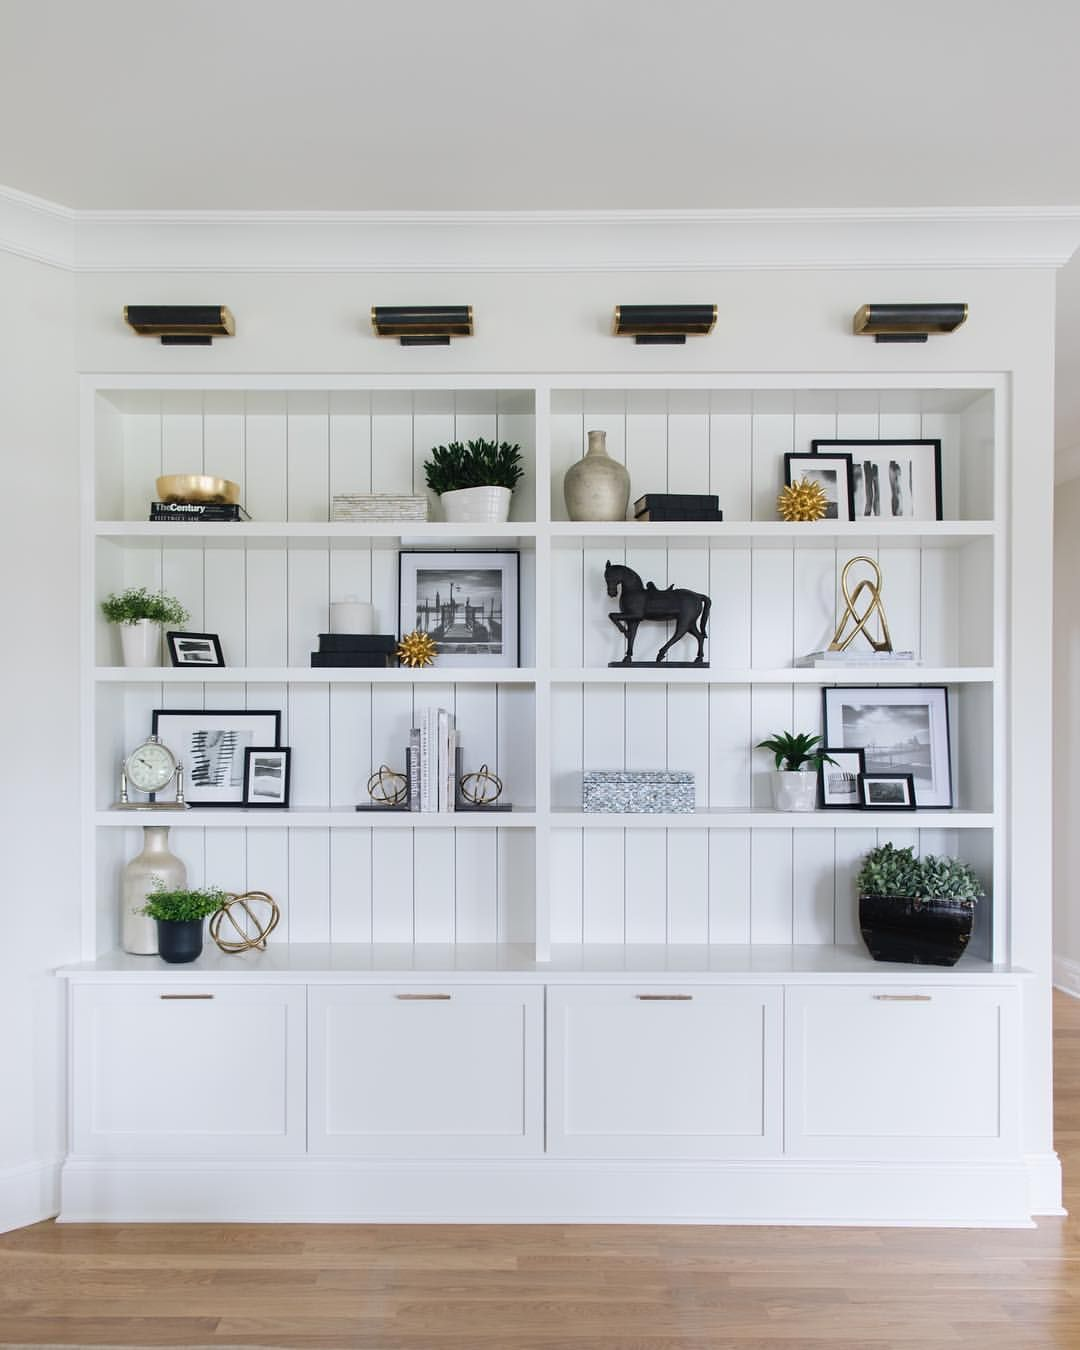 Vertical Shiplap Wins Again Really Love It In The Back Of This Built In Bookcase Shot For Timbertrail Farmhouse Family Rooms Room Shelves Family Room Design